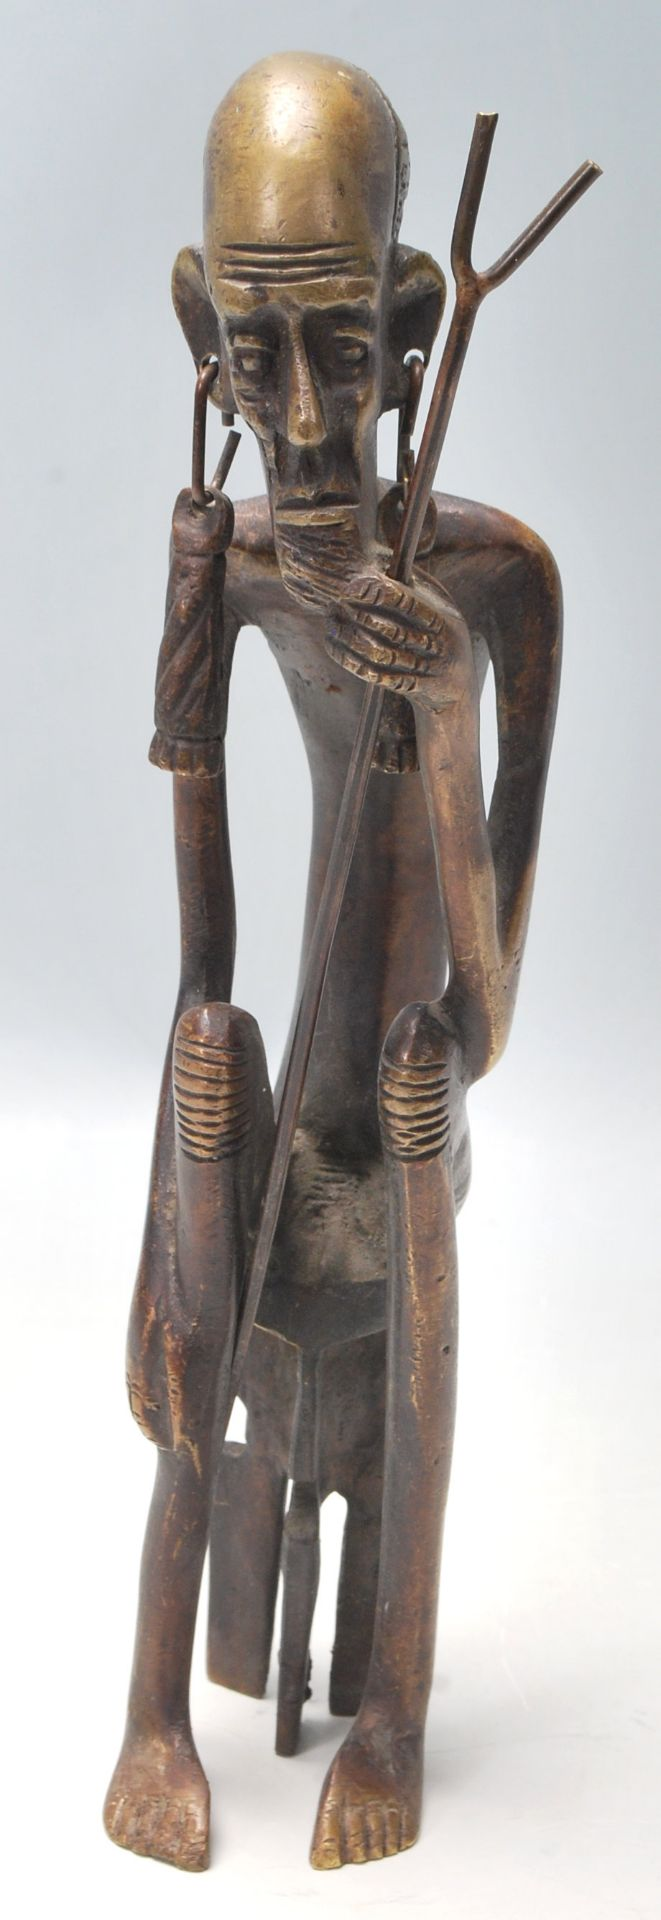 Los 252A - A vintage 20th Century Polynesian / Aboriginal bronze figure of a tribal elder with large earrings